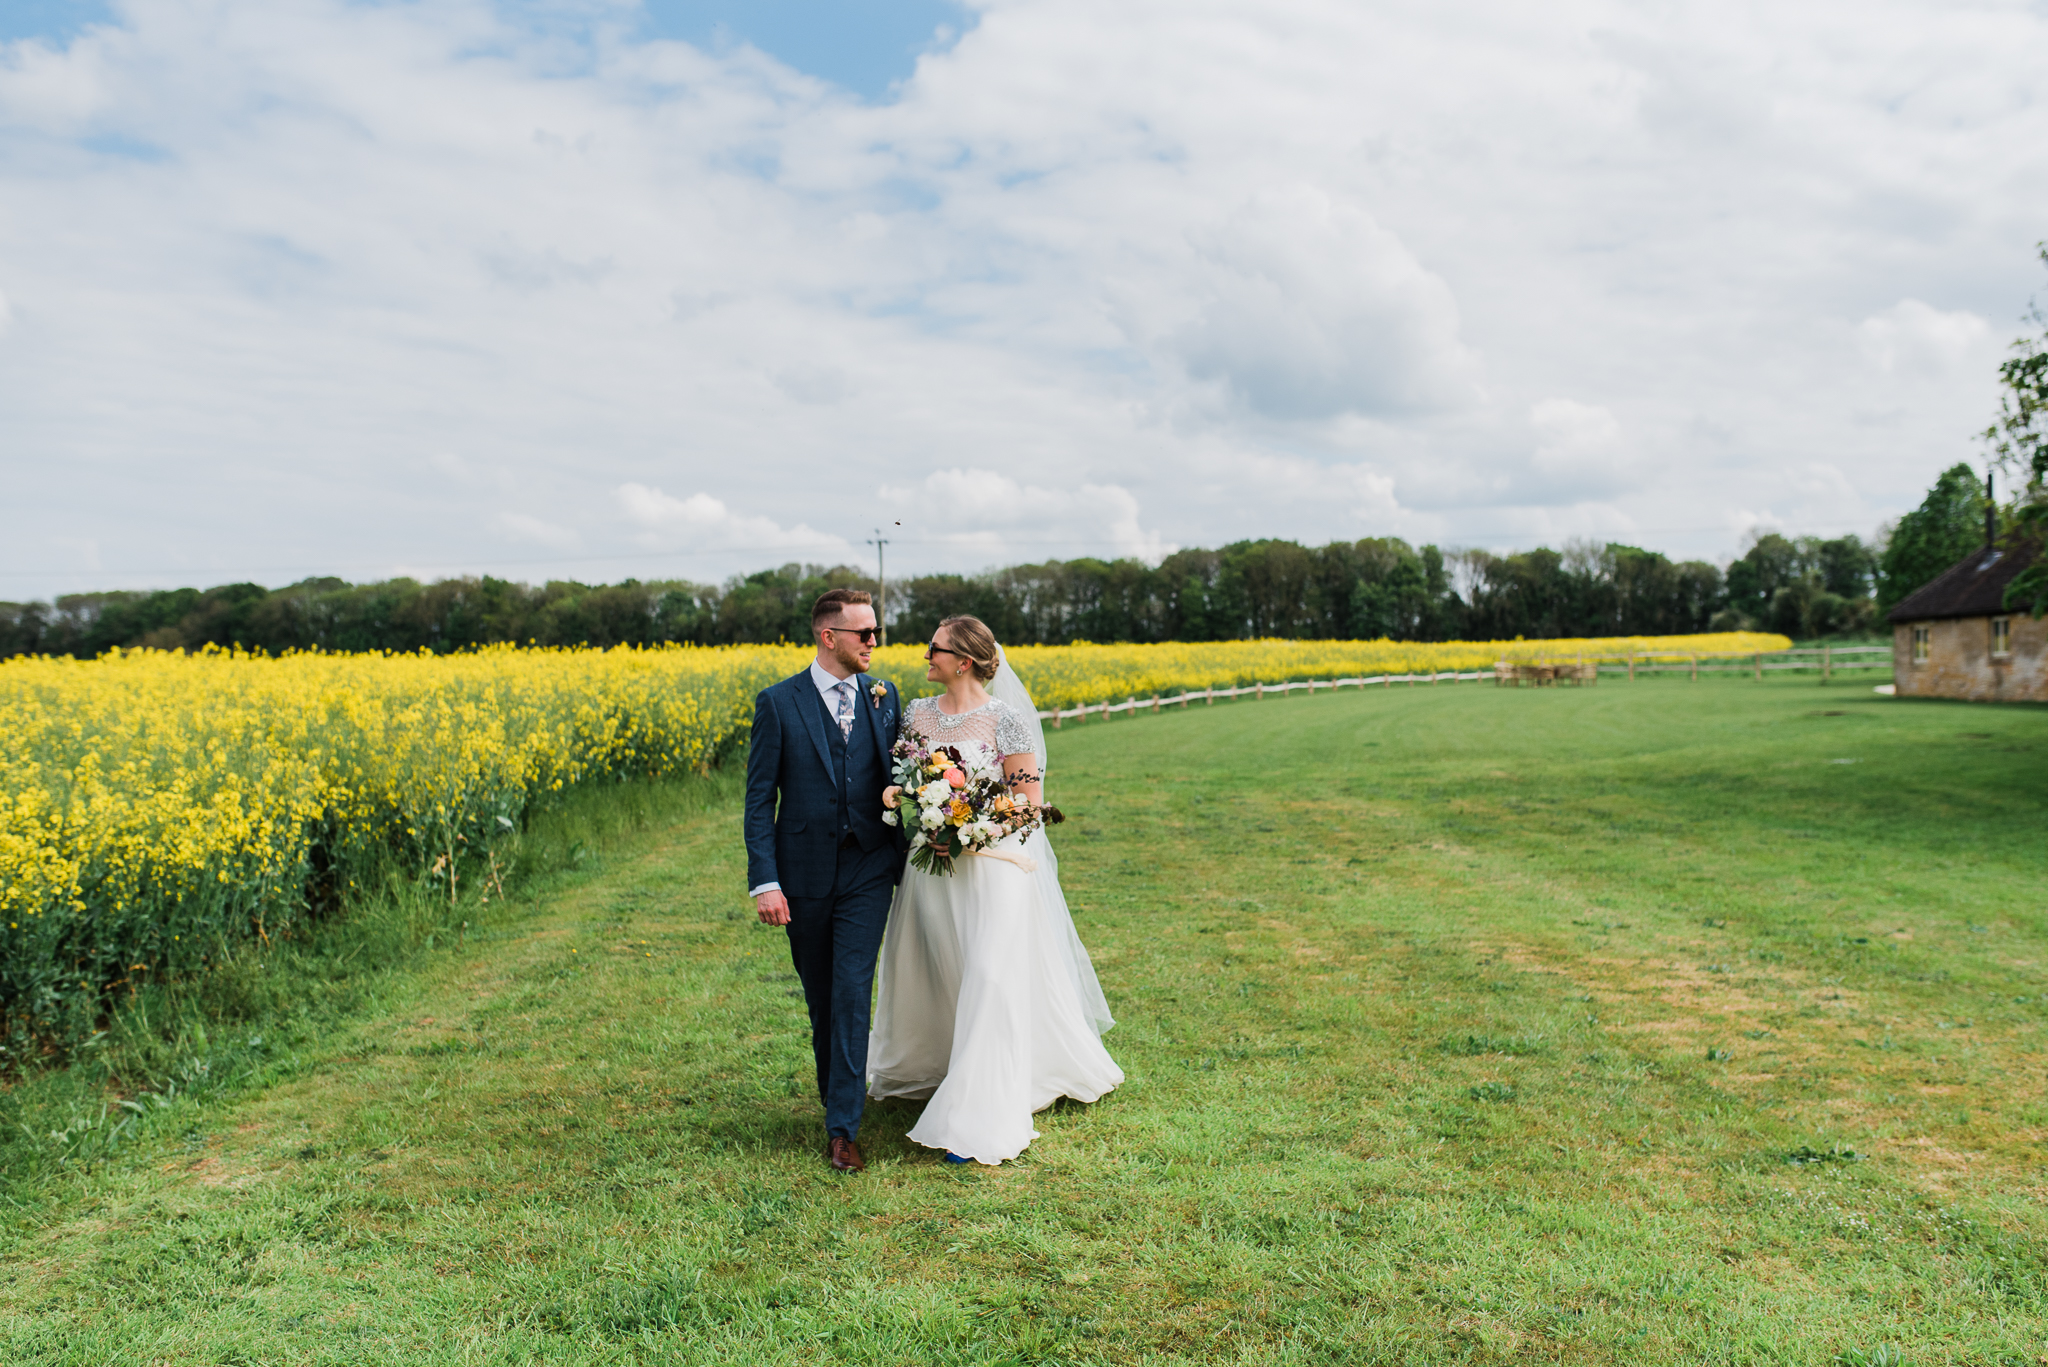 Bride and groom walking at lapstone barn beside rapeseed field